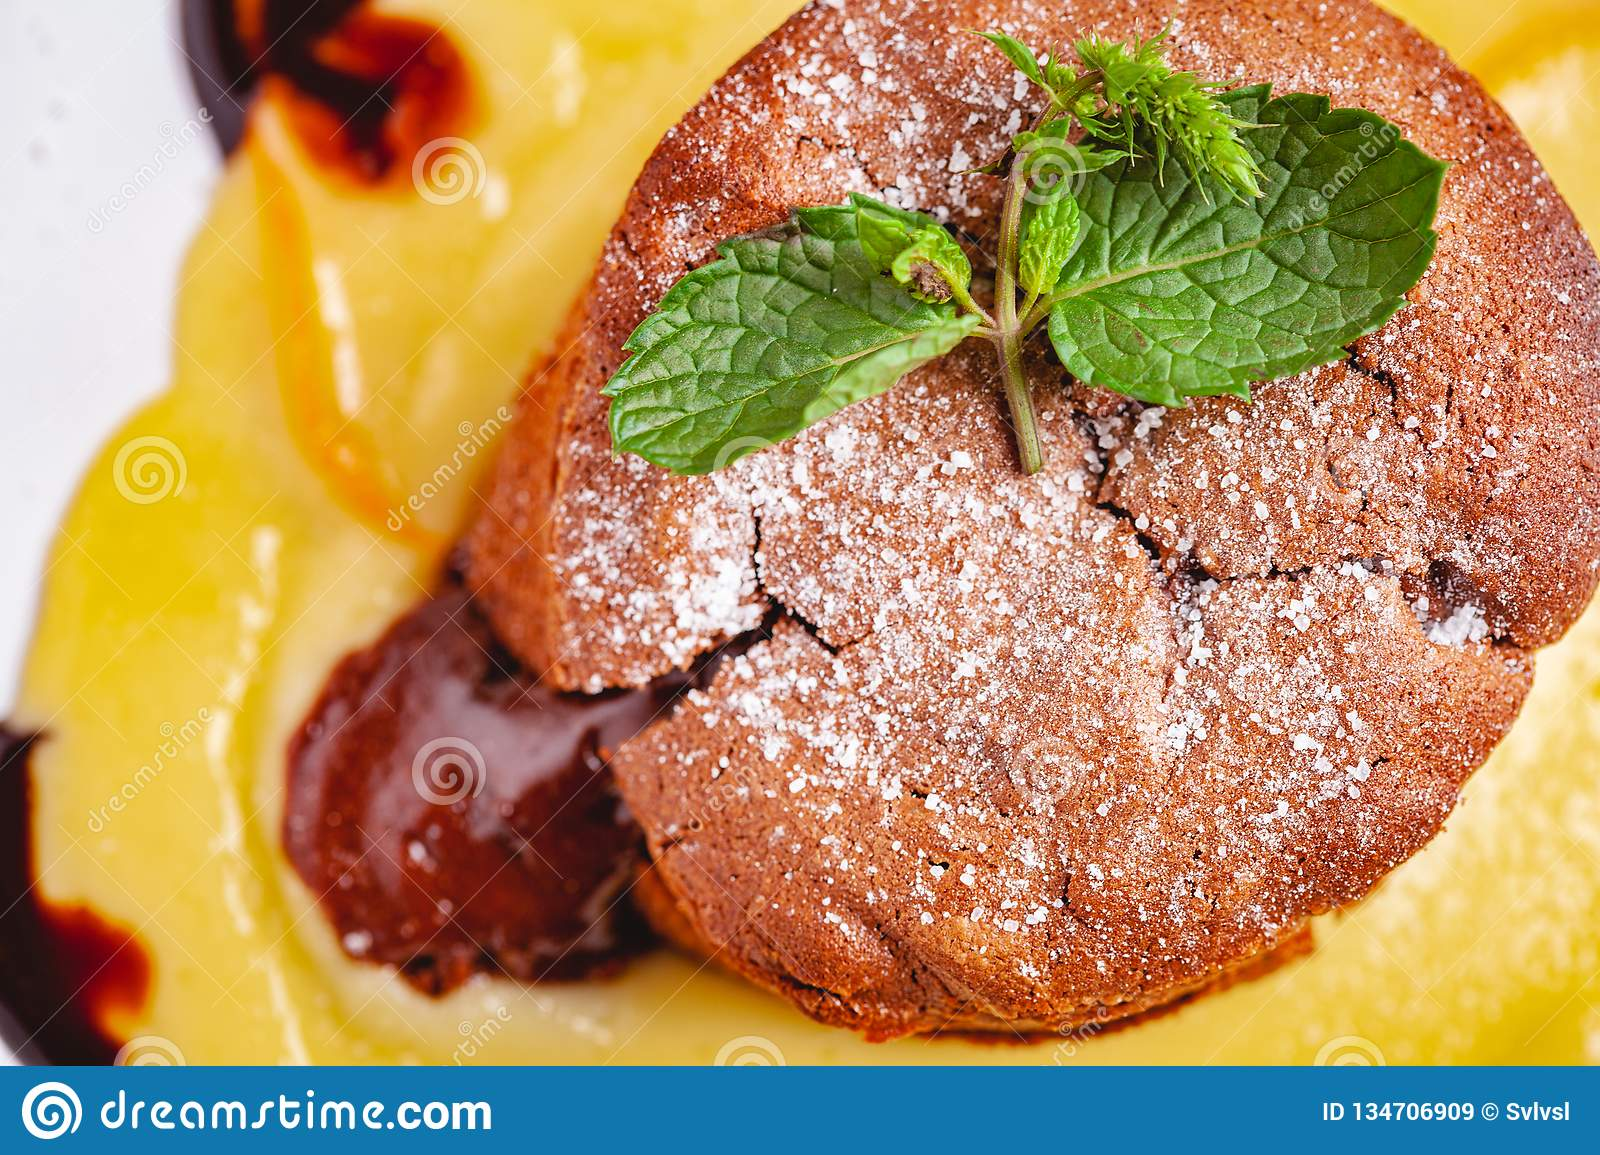 Chocolate fondant served with custard cream on white plate. Lava cake recipe. Top view